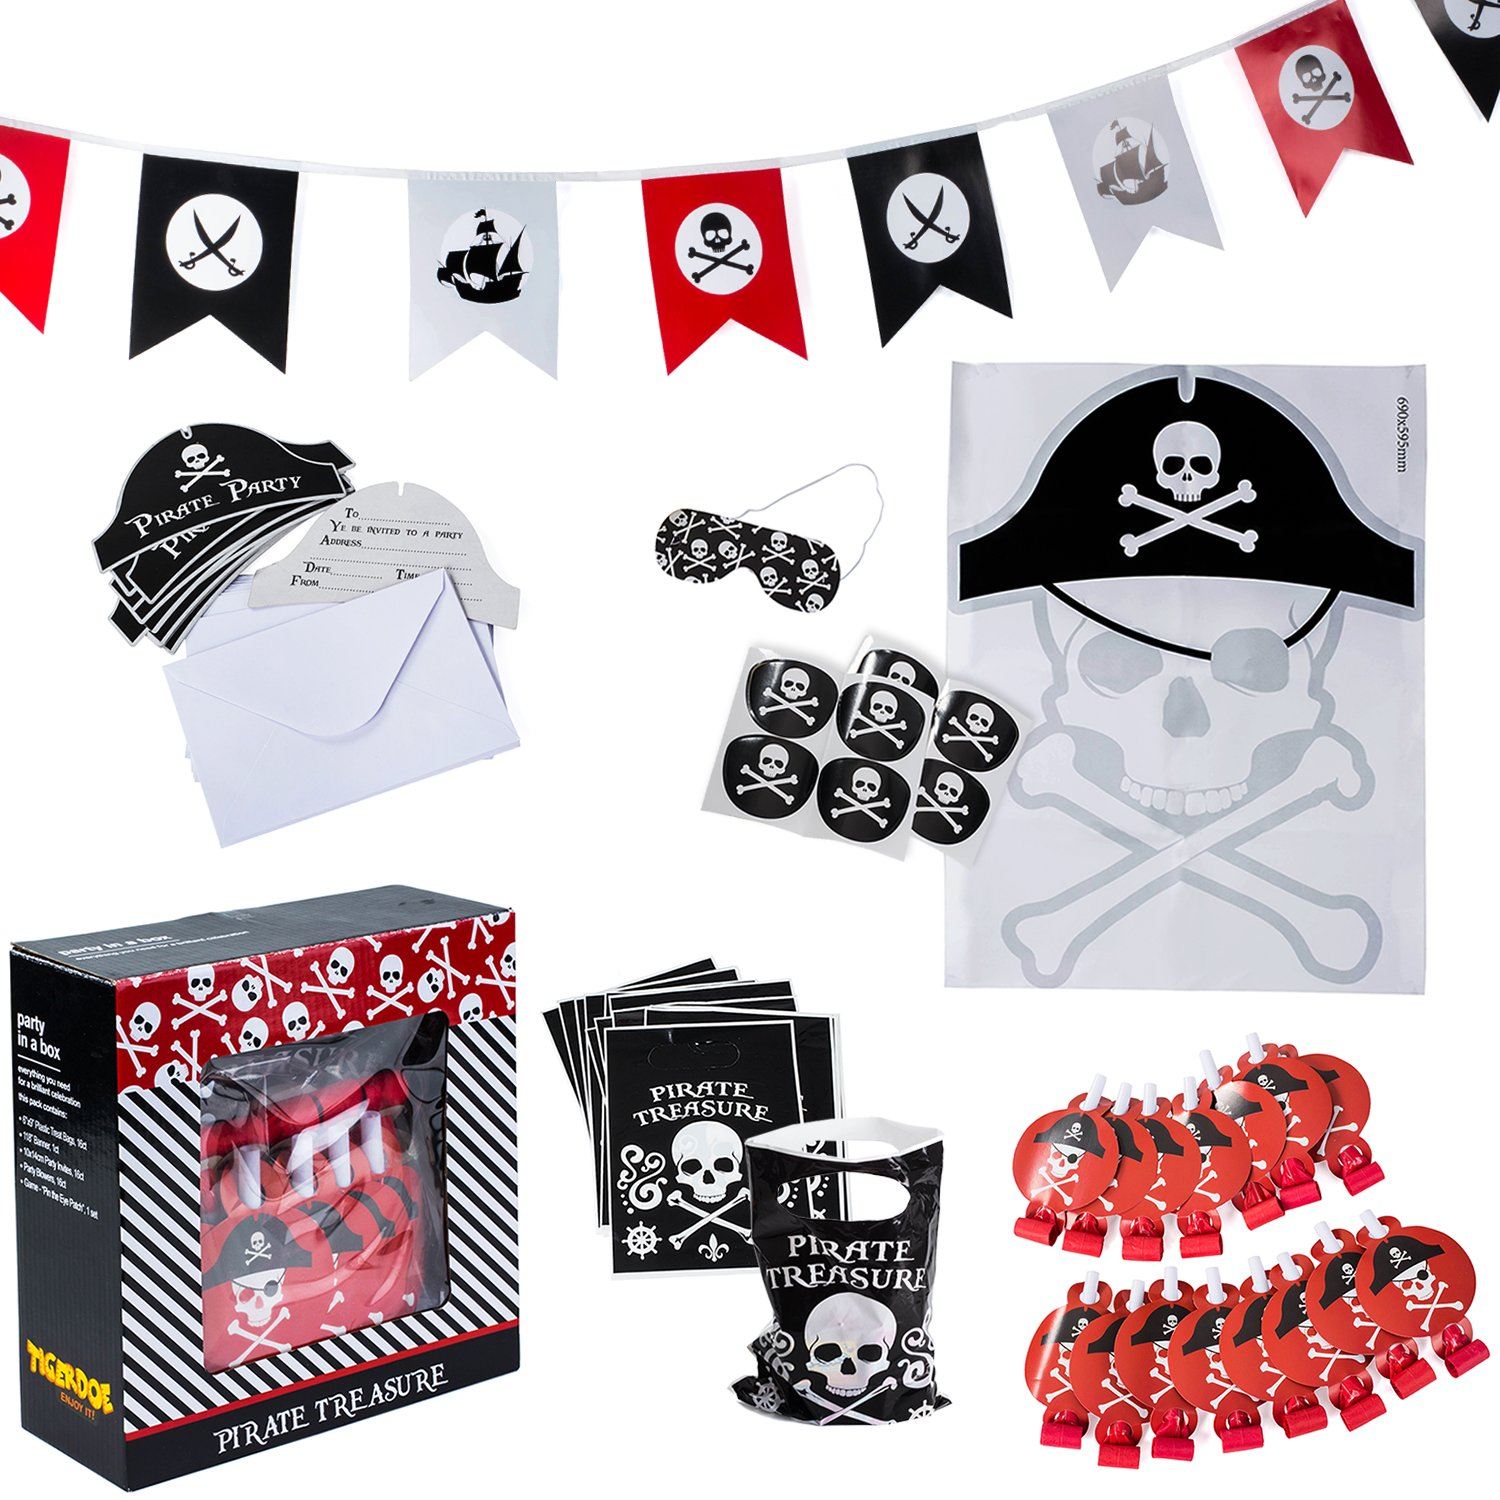 Pirate Party Supplies for kids Birthday - Set for 16 Guests - Pirate Party Decorations - Pirate Party...